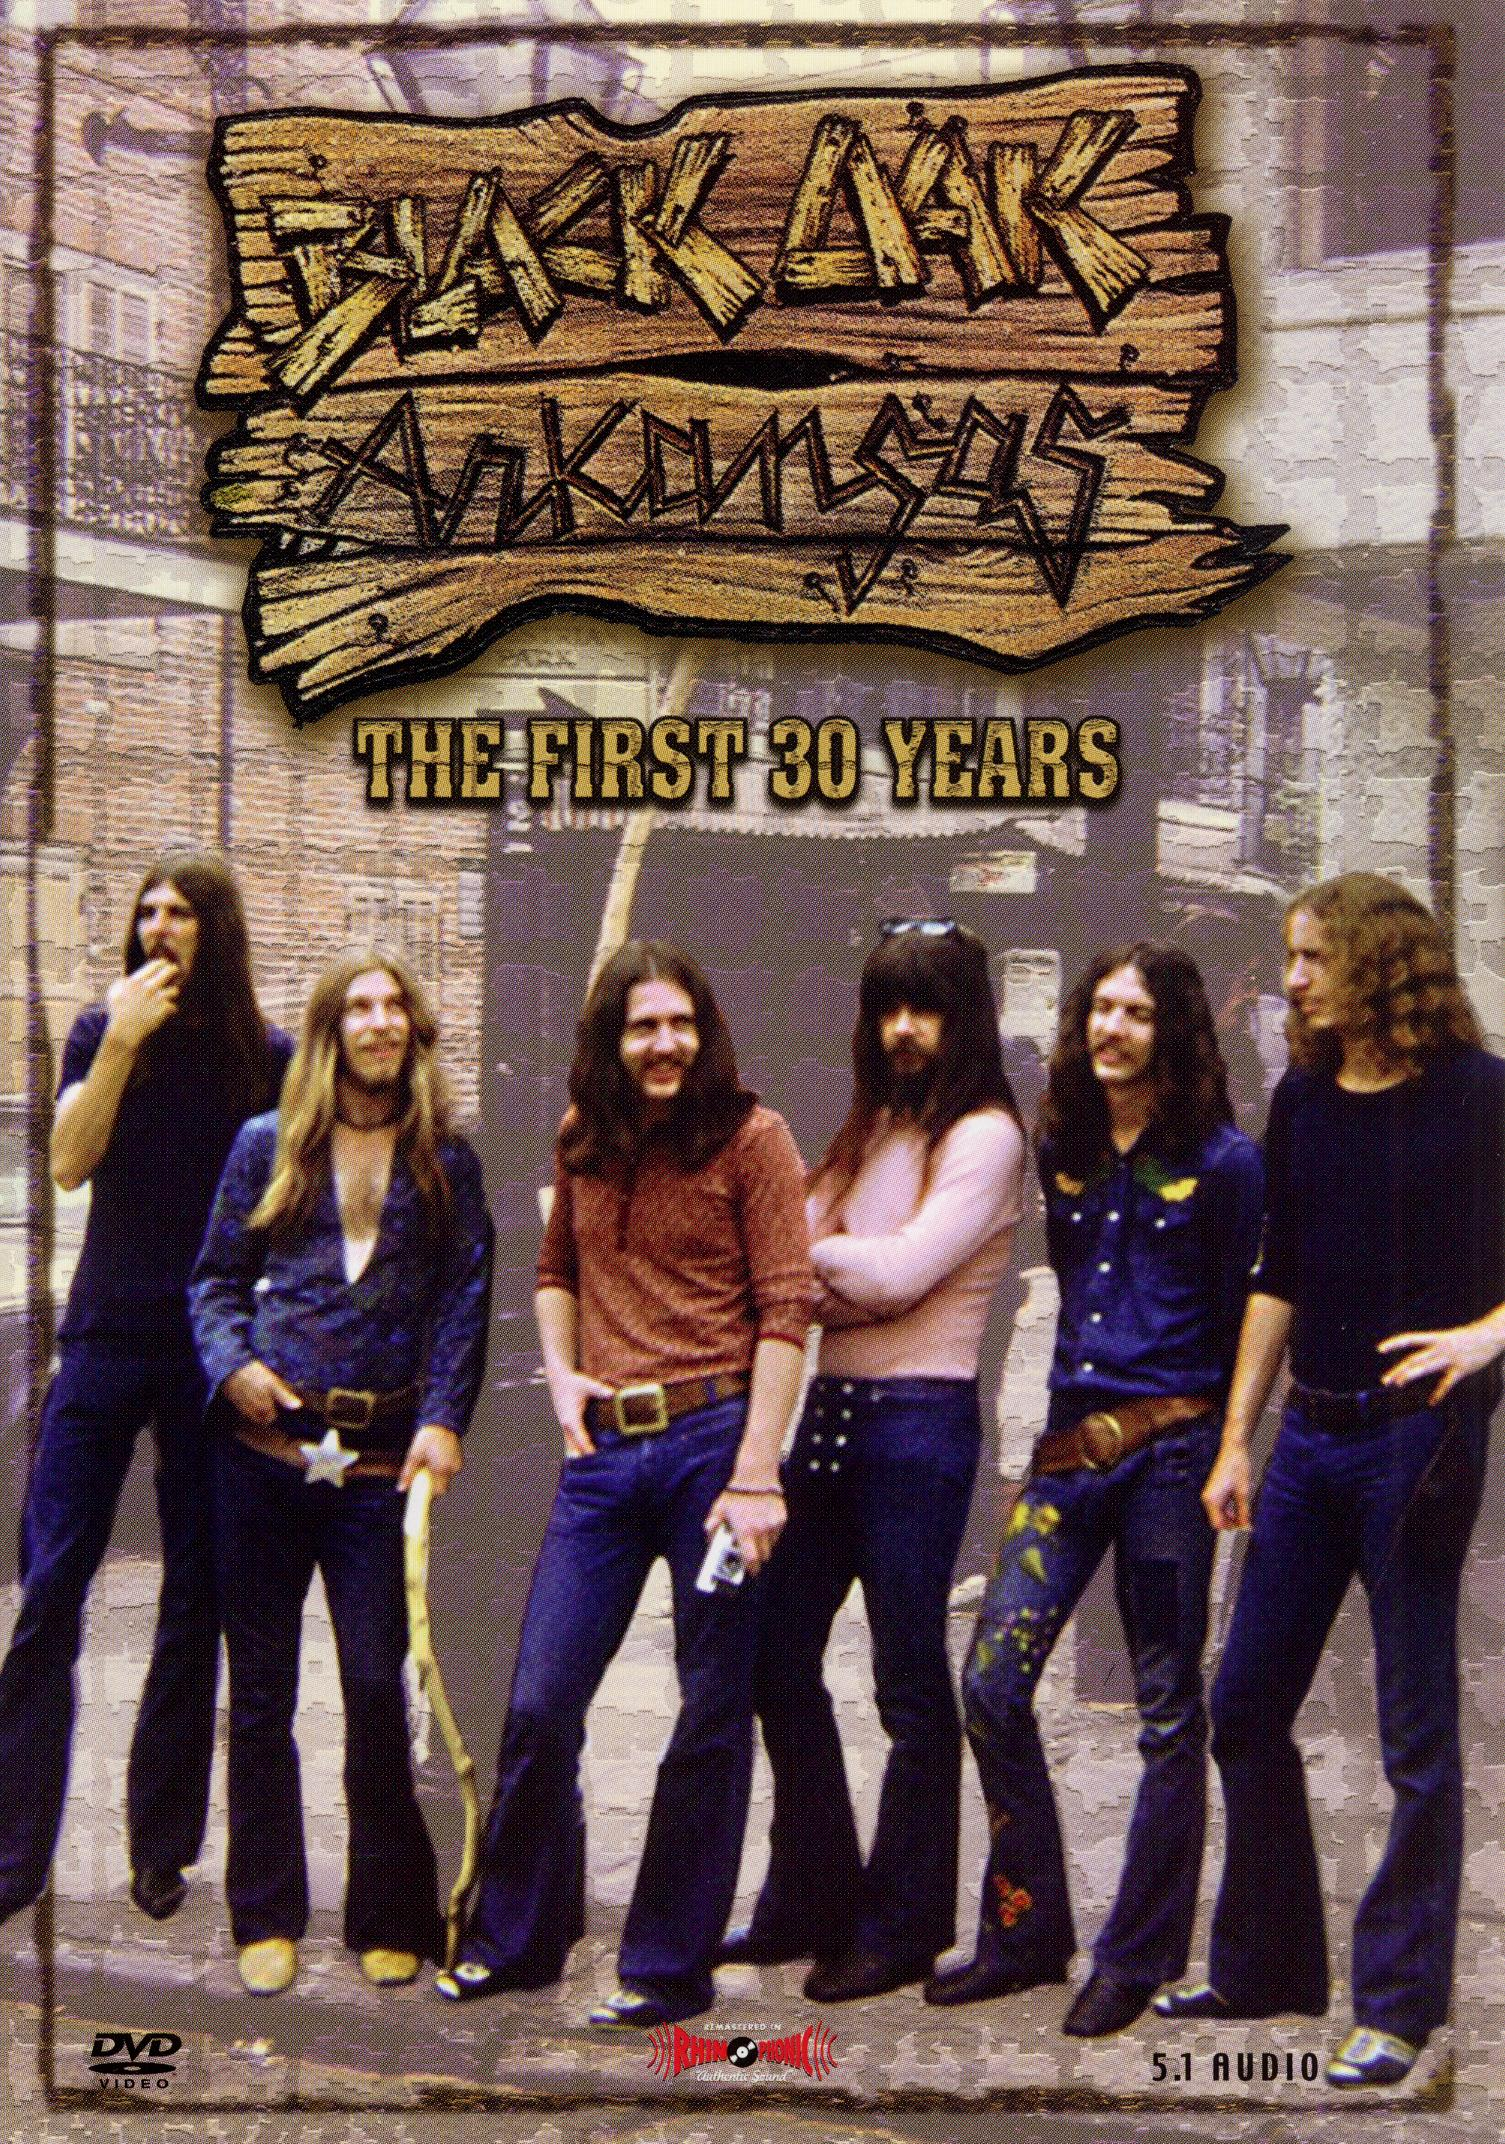 Black Oak Arkansas: The First 30 Years